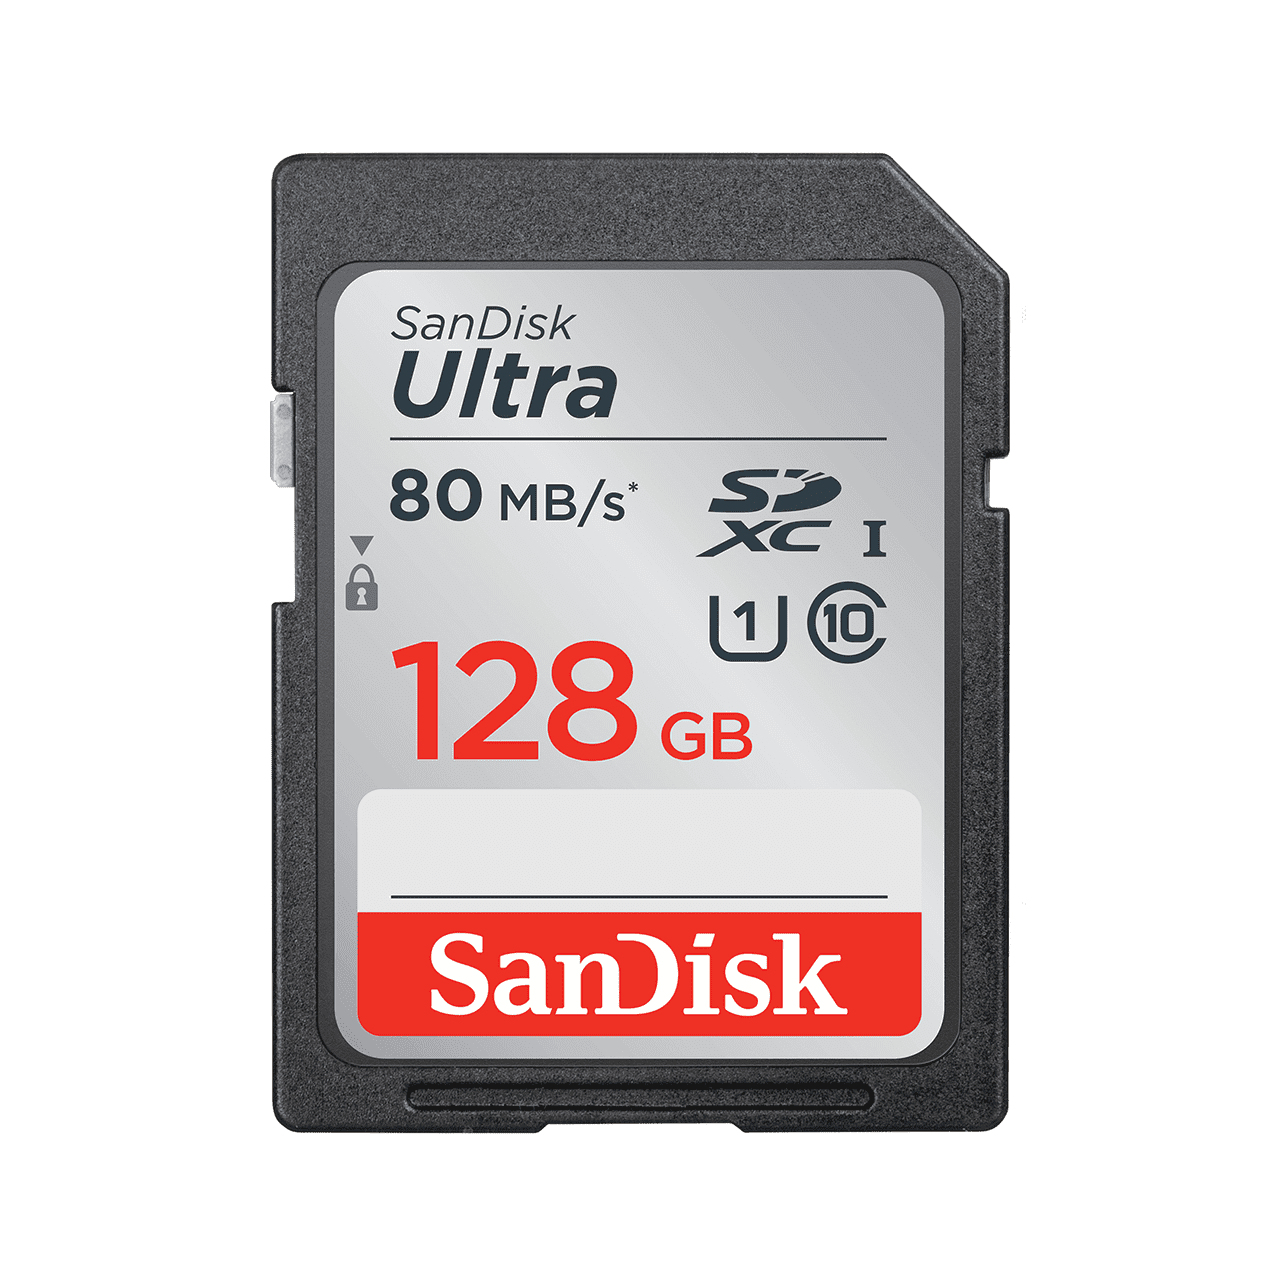 Sandisk Ultra 128GB SDXC Memory Card 100MB/s Class 10 UHS-I